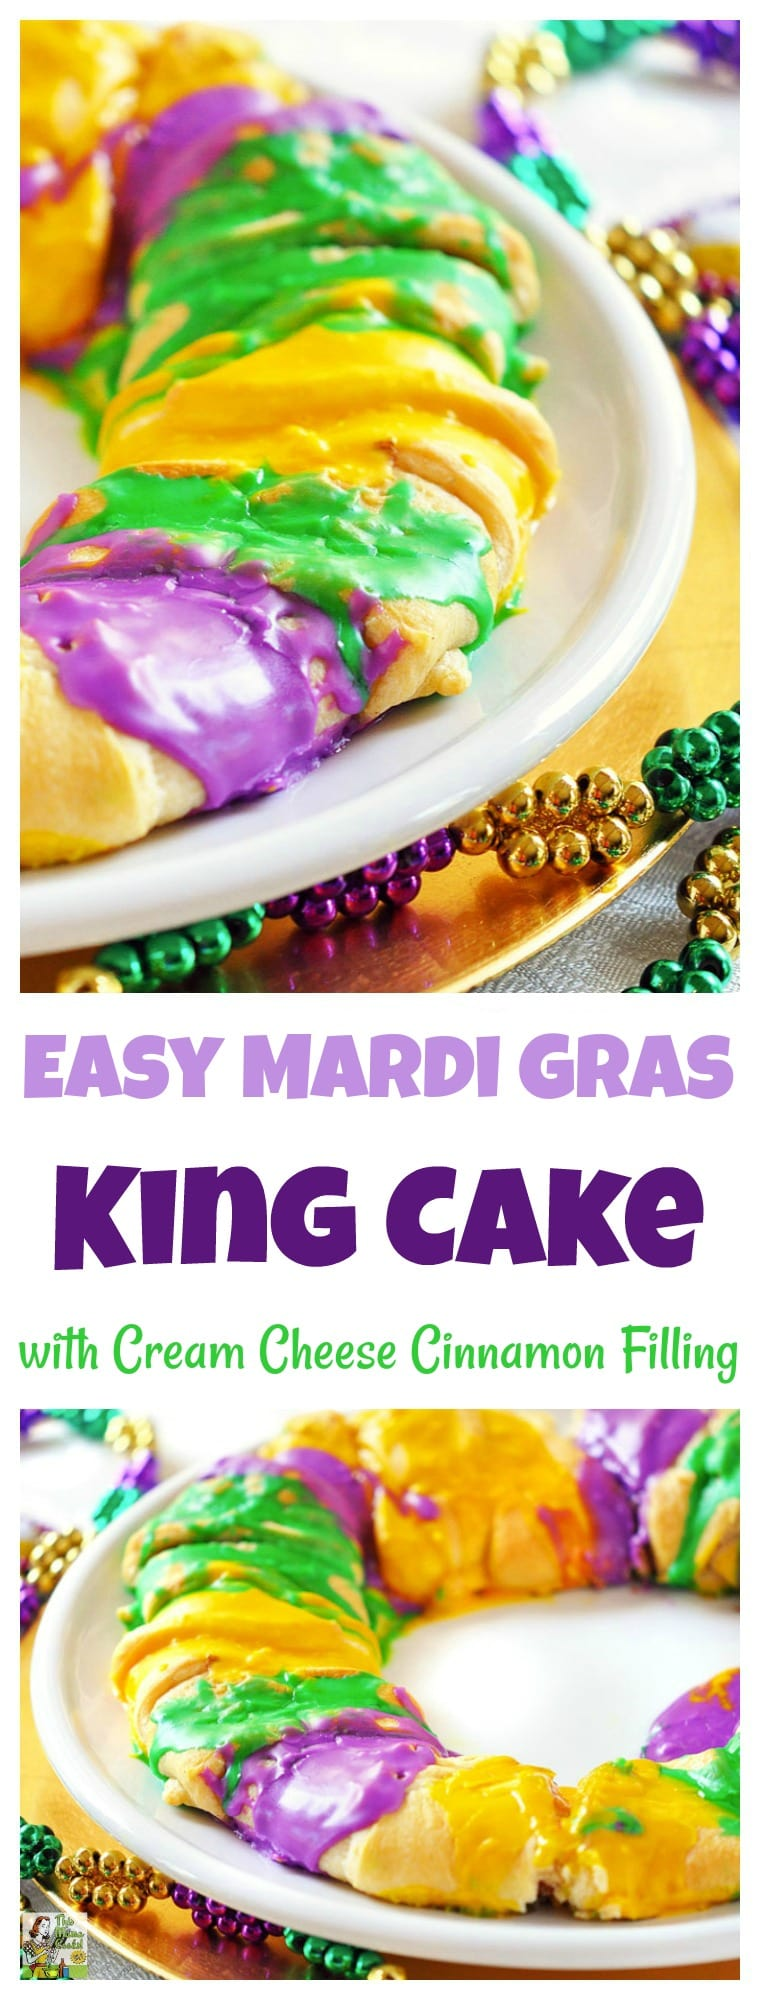 Need a King Cake recipe for your Mardi Gras party? Make this healthier and easy to make Mardi Gras Kings Cake recipe with Cream Cheese Cinnamon Filling! #mardigras #mardigrasparty #mardigrasfood #kingscake #kingscakebaby #crescentdough #crescentrecipes #baking #bakingrecipes #easybaking#cake #cakerecipes #creamcheese #desserts #dessertrecipes #dessertideas